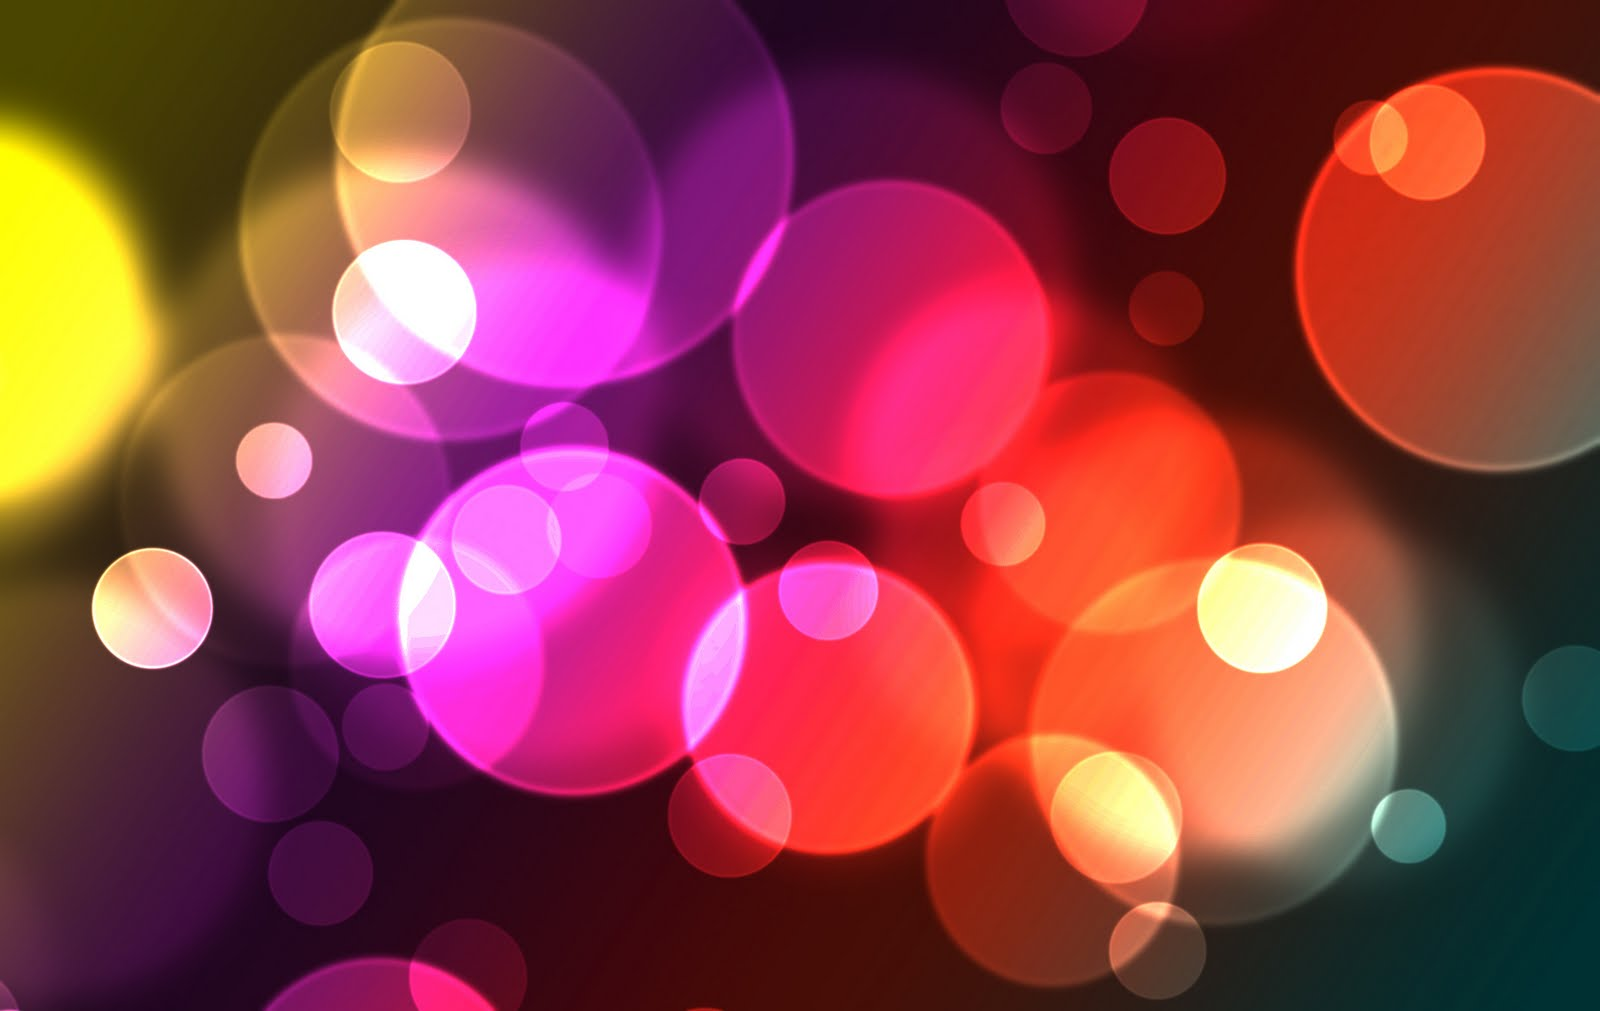 25 Colourful Wallpaper Collection